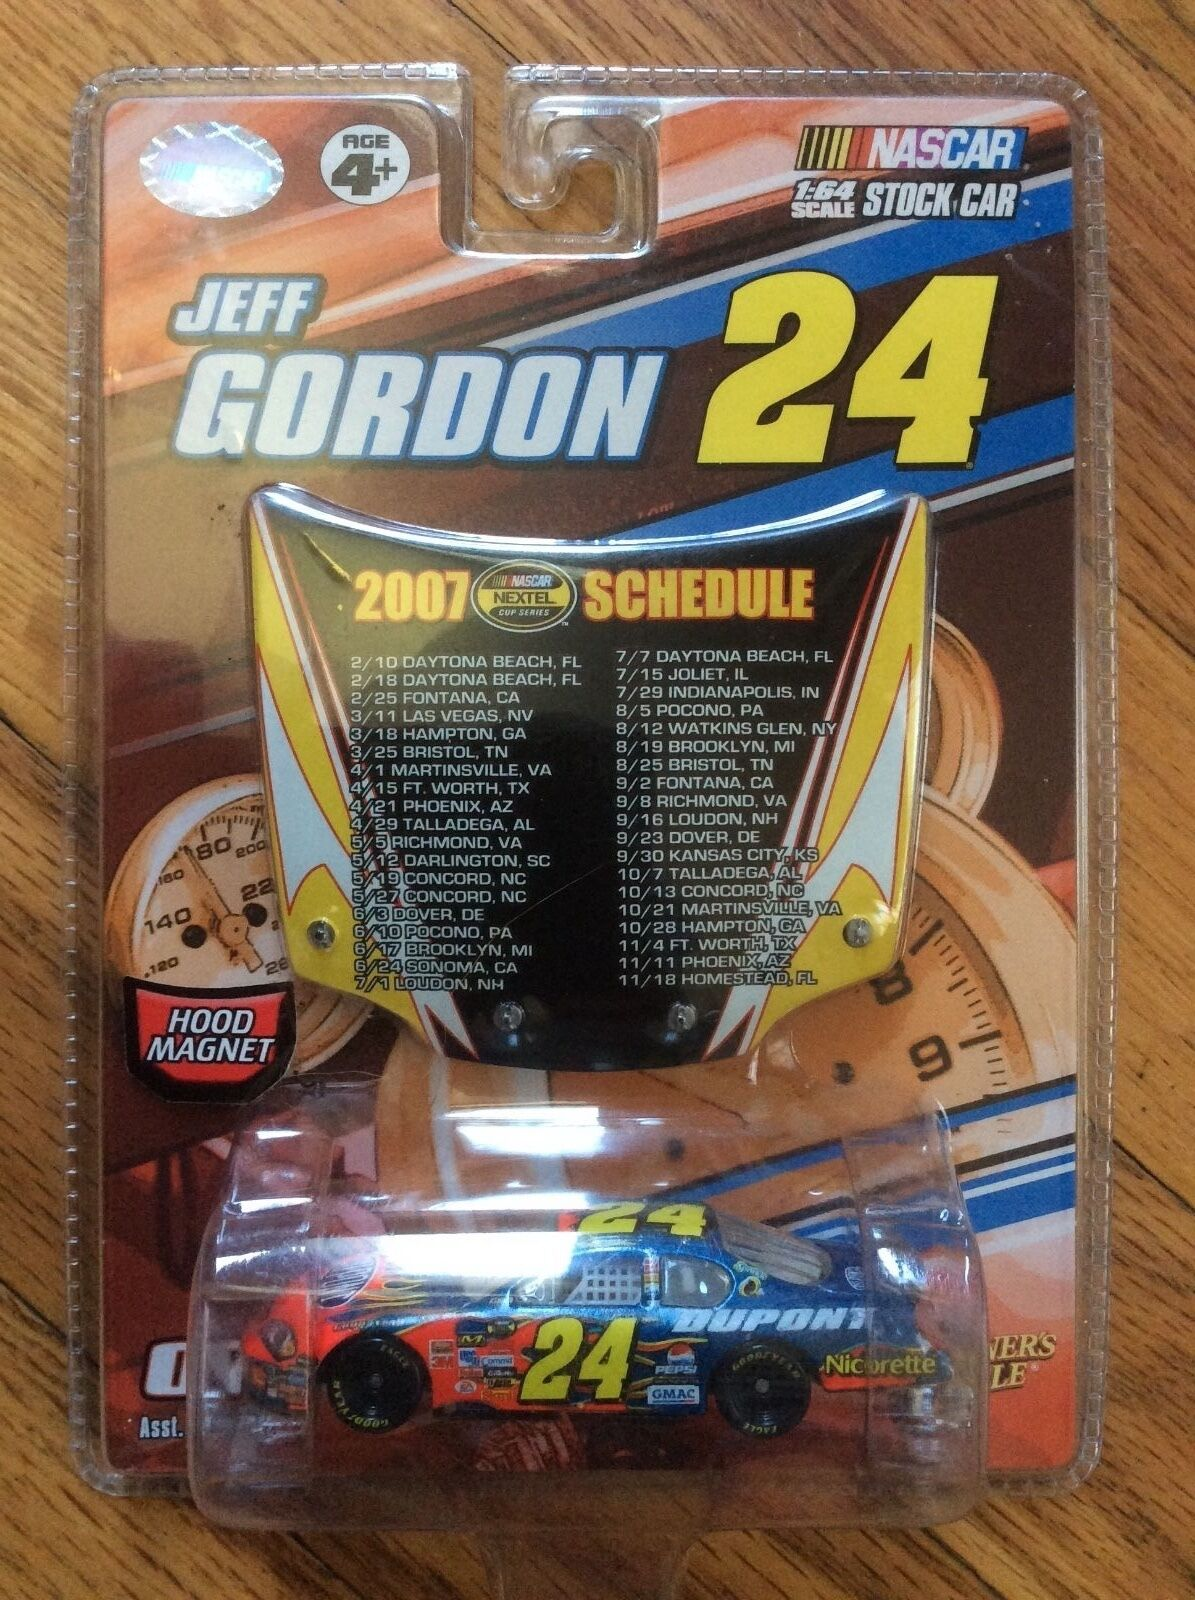 NEW 2007 WINNERS CIRCLE NASCAR  JEFF GORDON   SCHEDULE HOD MAGNET & 1 64 CAR